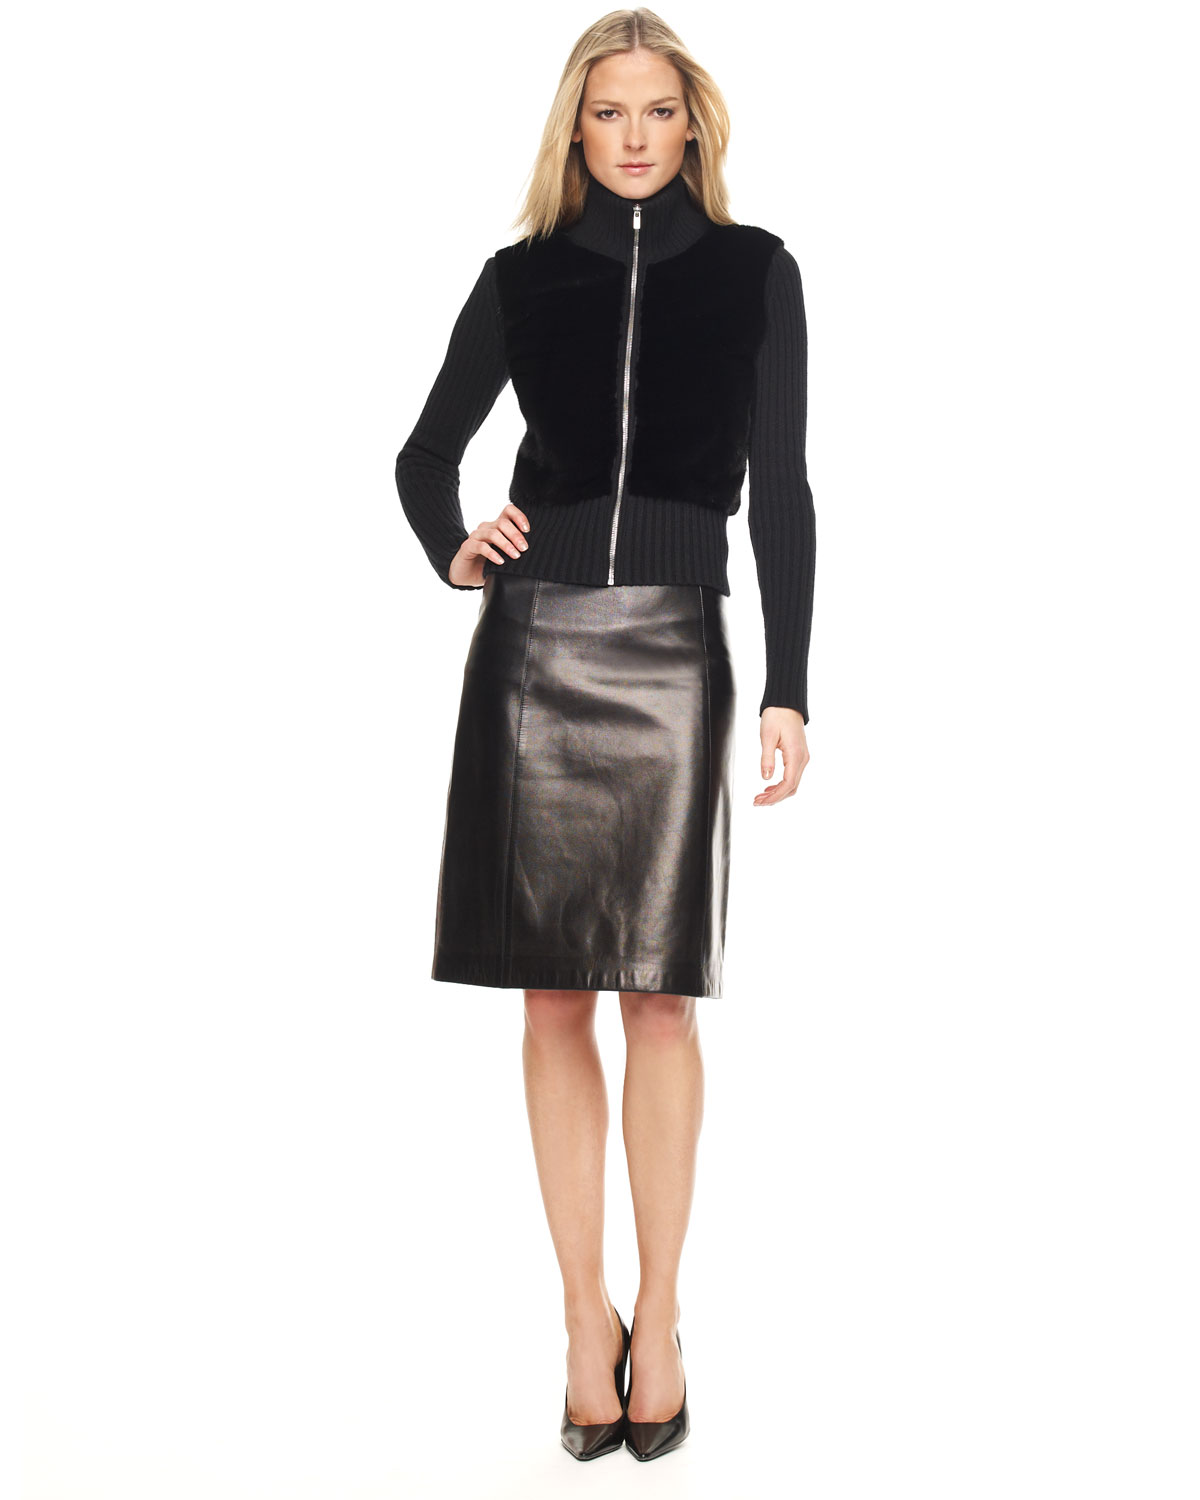 Michael kors Leather A-line Skirt in Black | Lyst